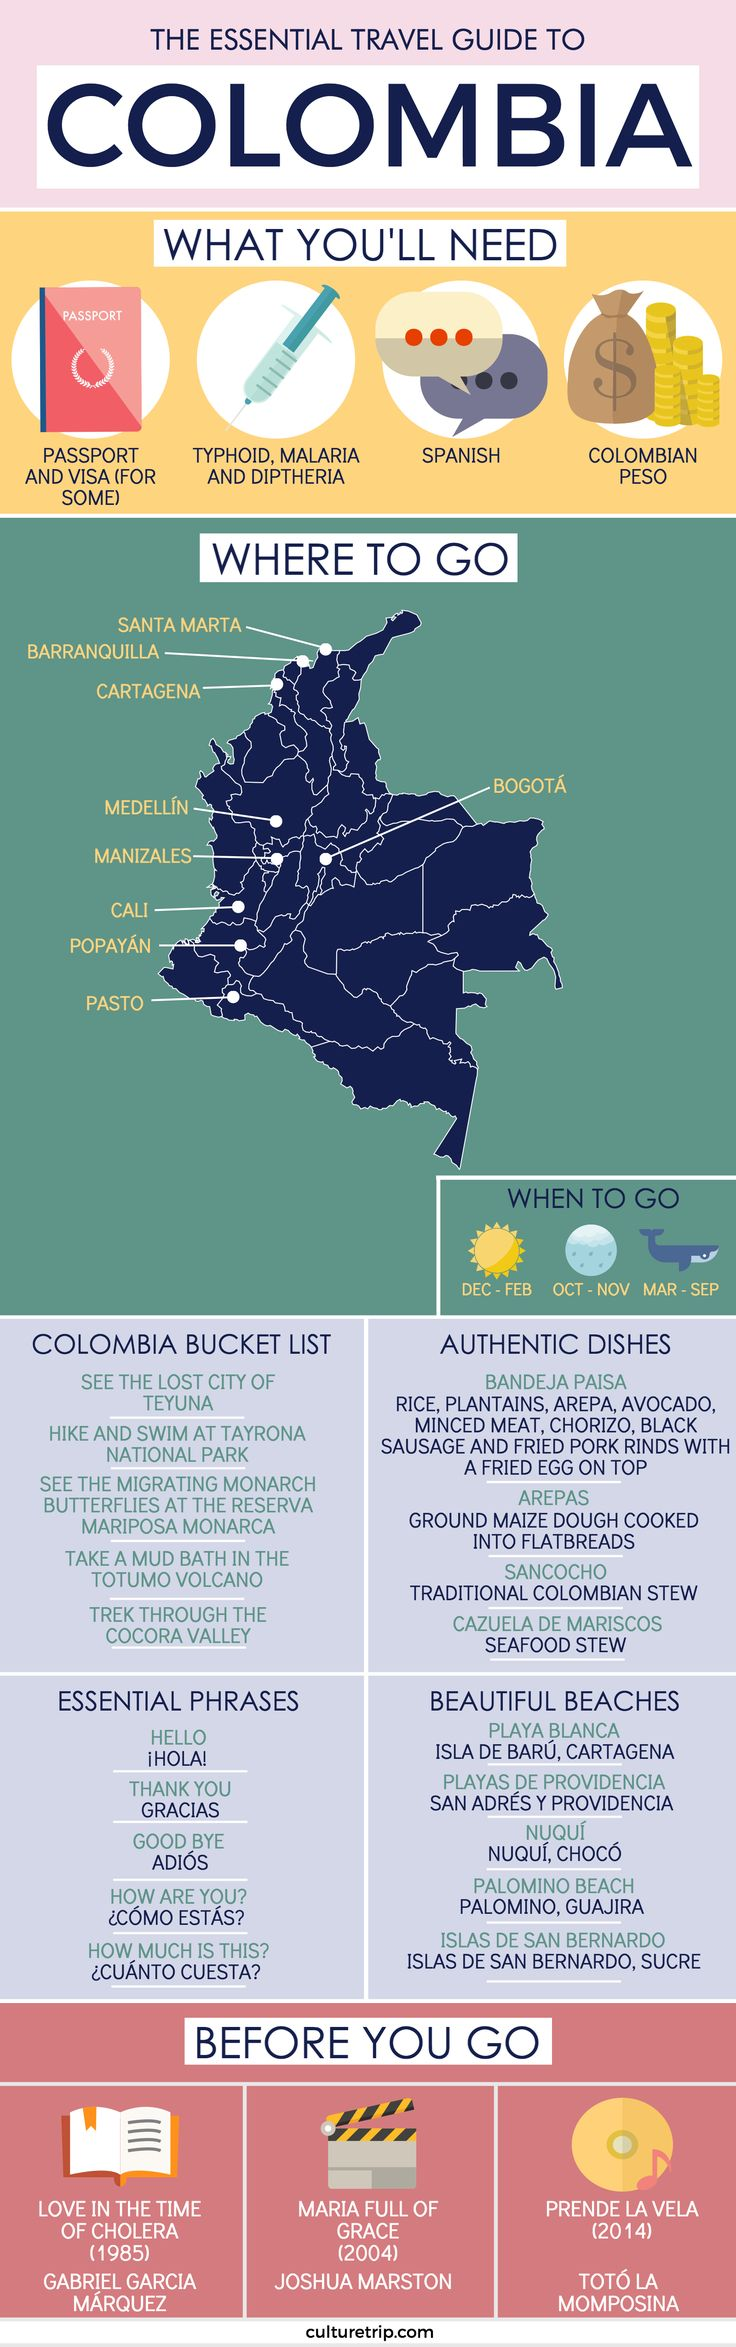 The Essential Travel Guide To Colombia (Infographic)